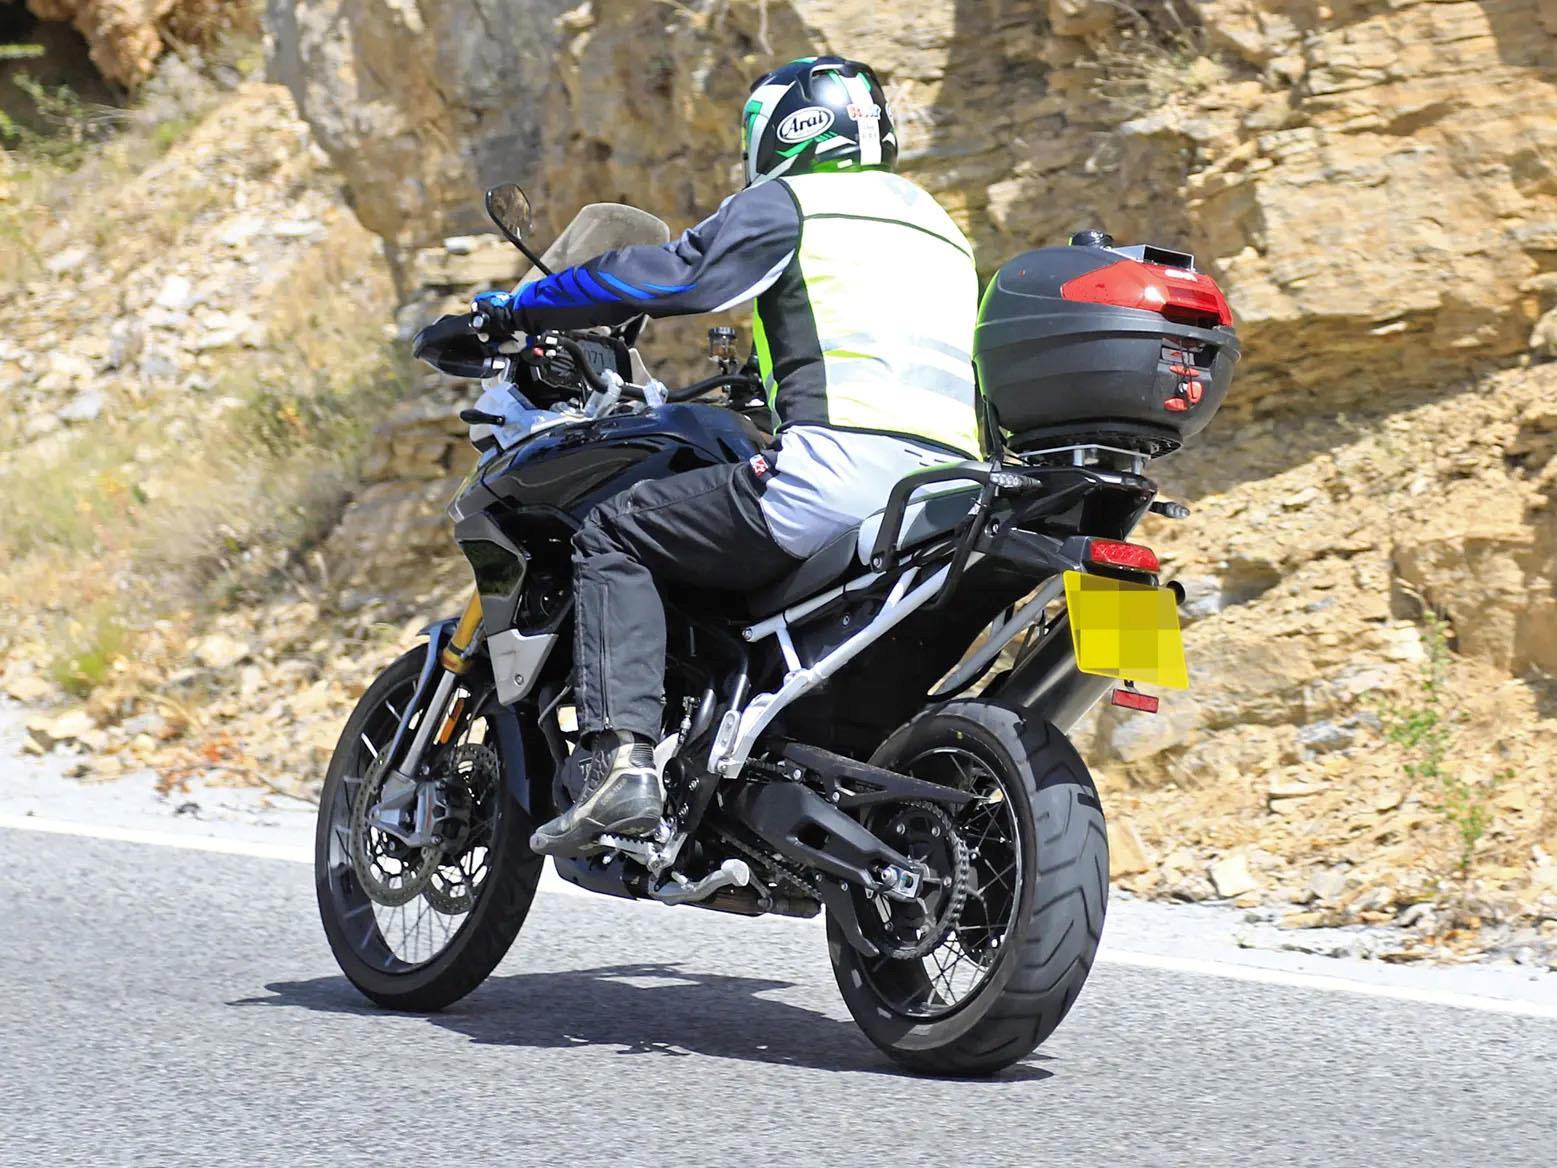 Triumph Tiger 900 Spy shot rear